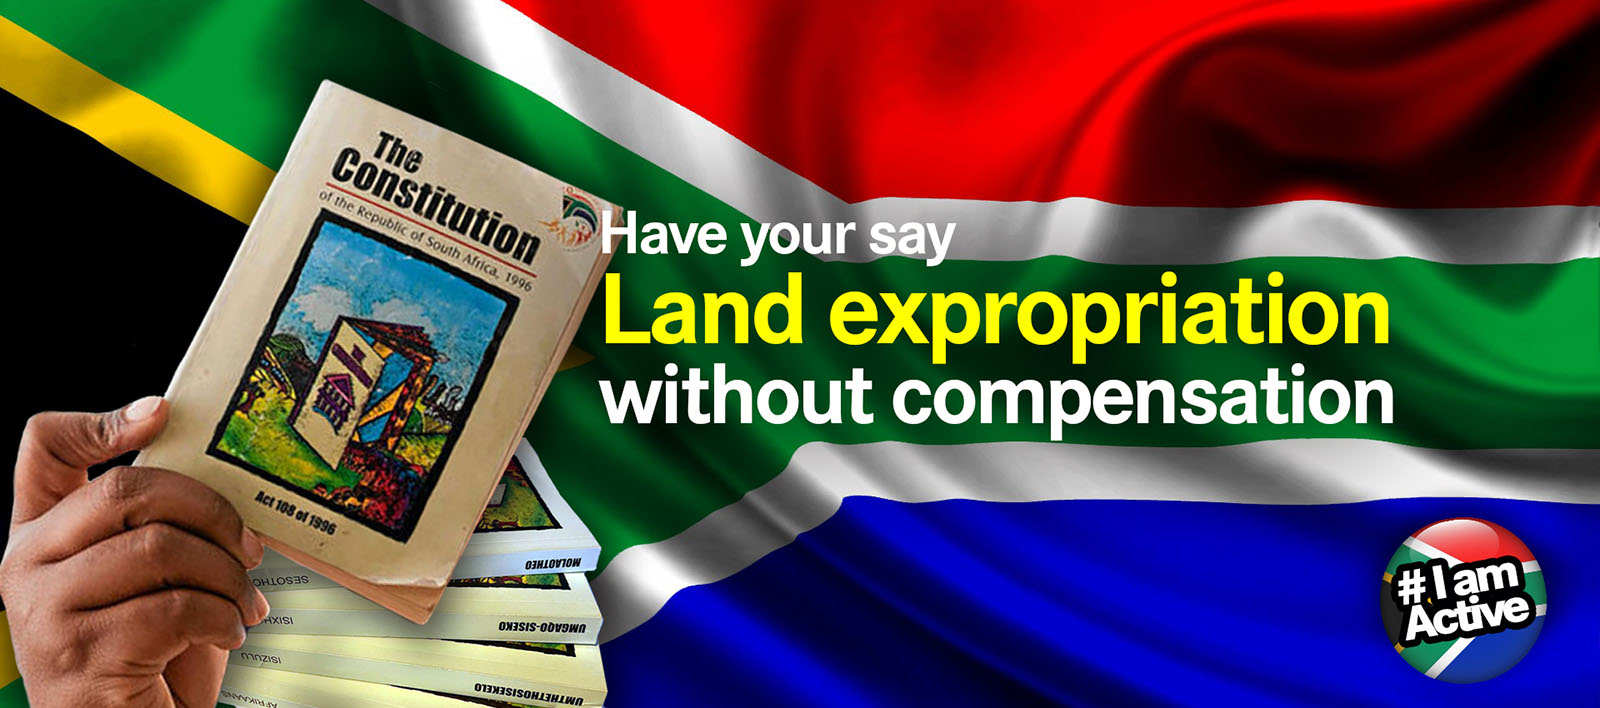 Give your final input on Land Expropriation by 29 February.